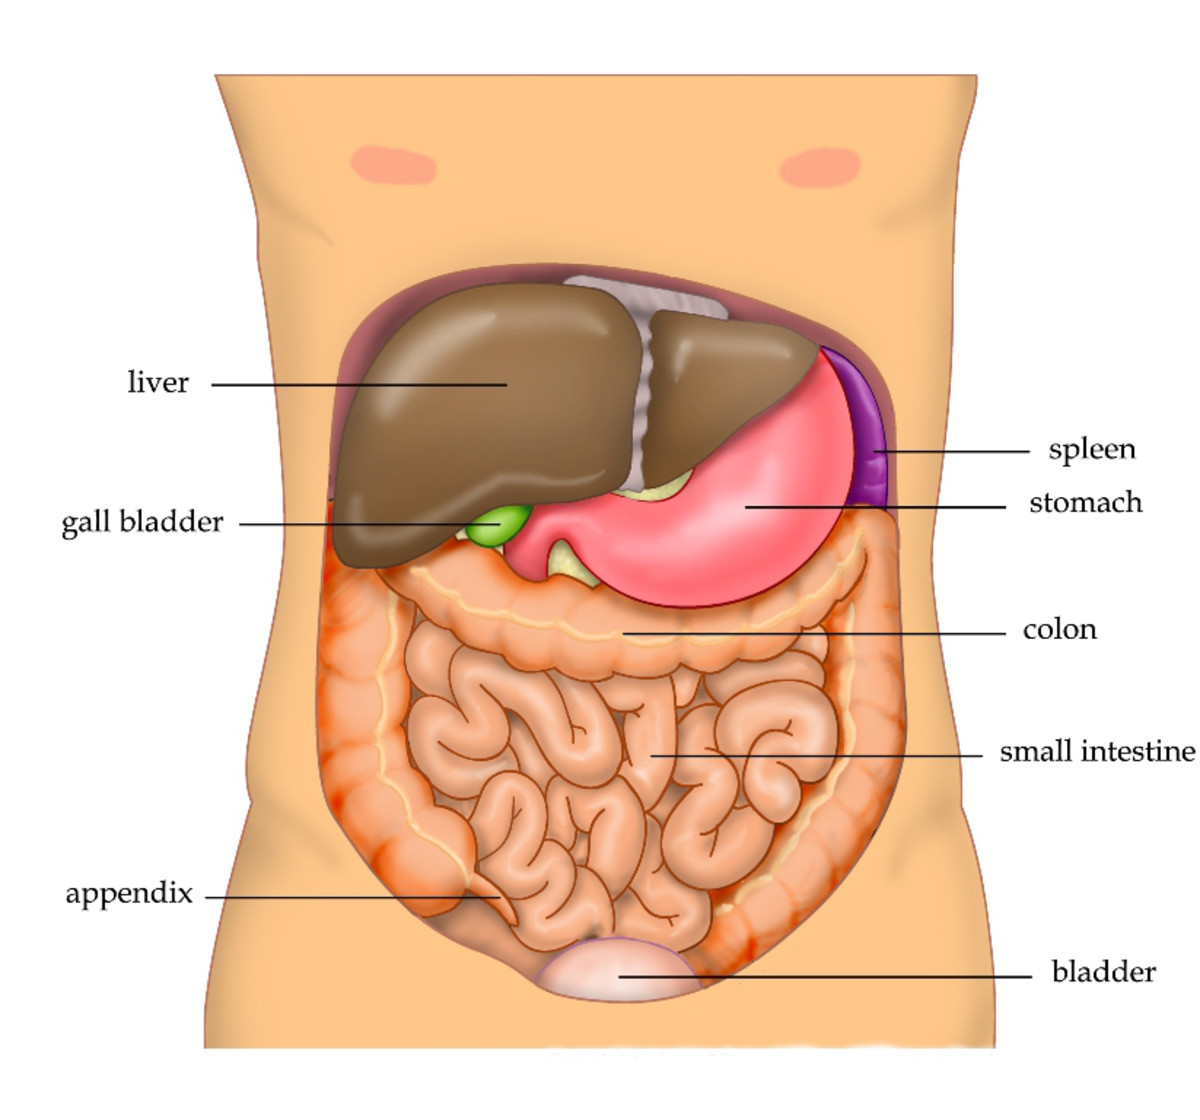 As in dogs, the human spleen is located on the left side of the abdomen near and partially behind the stomach, is covered with a capsule, and contains red pulp and white pulp.